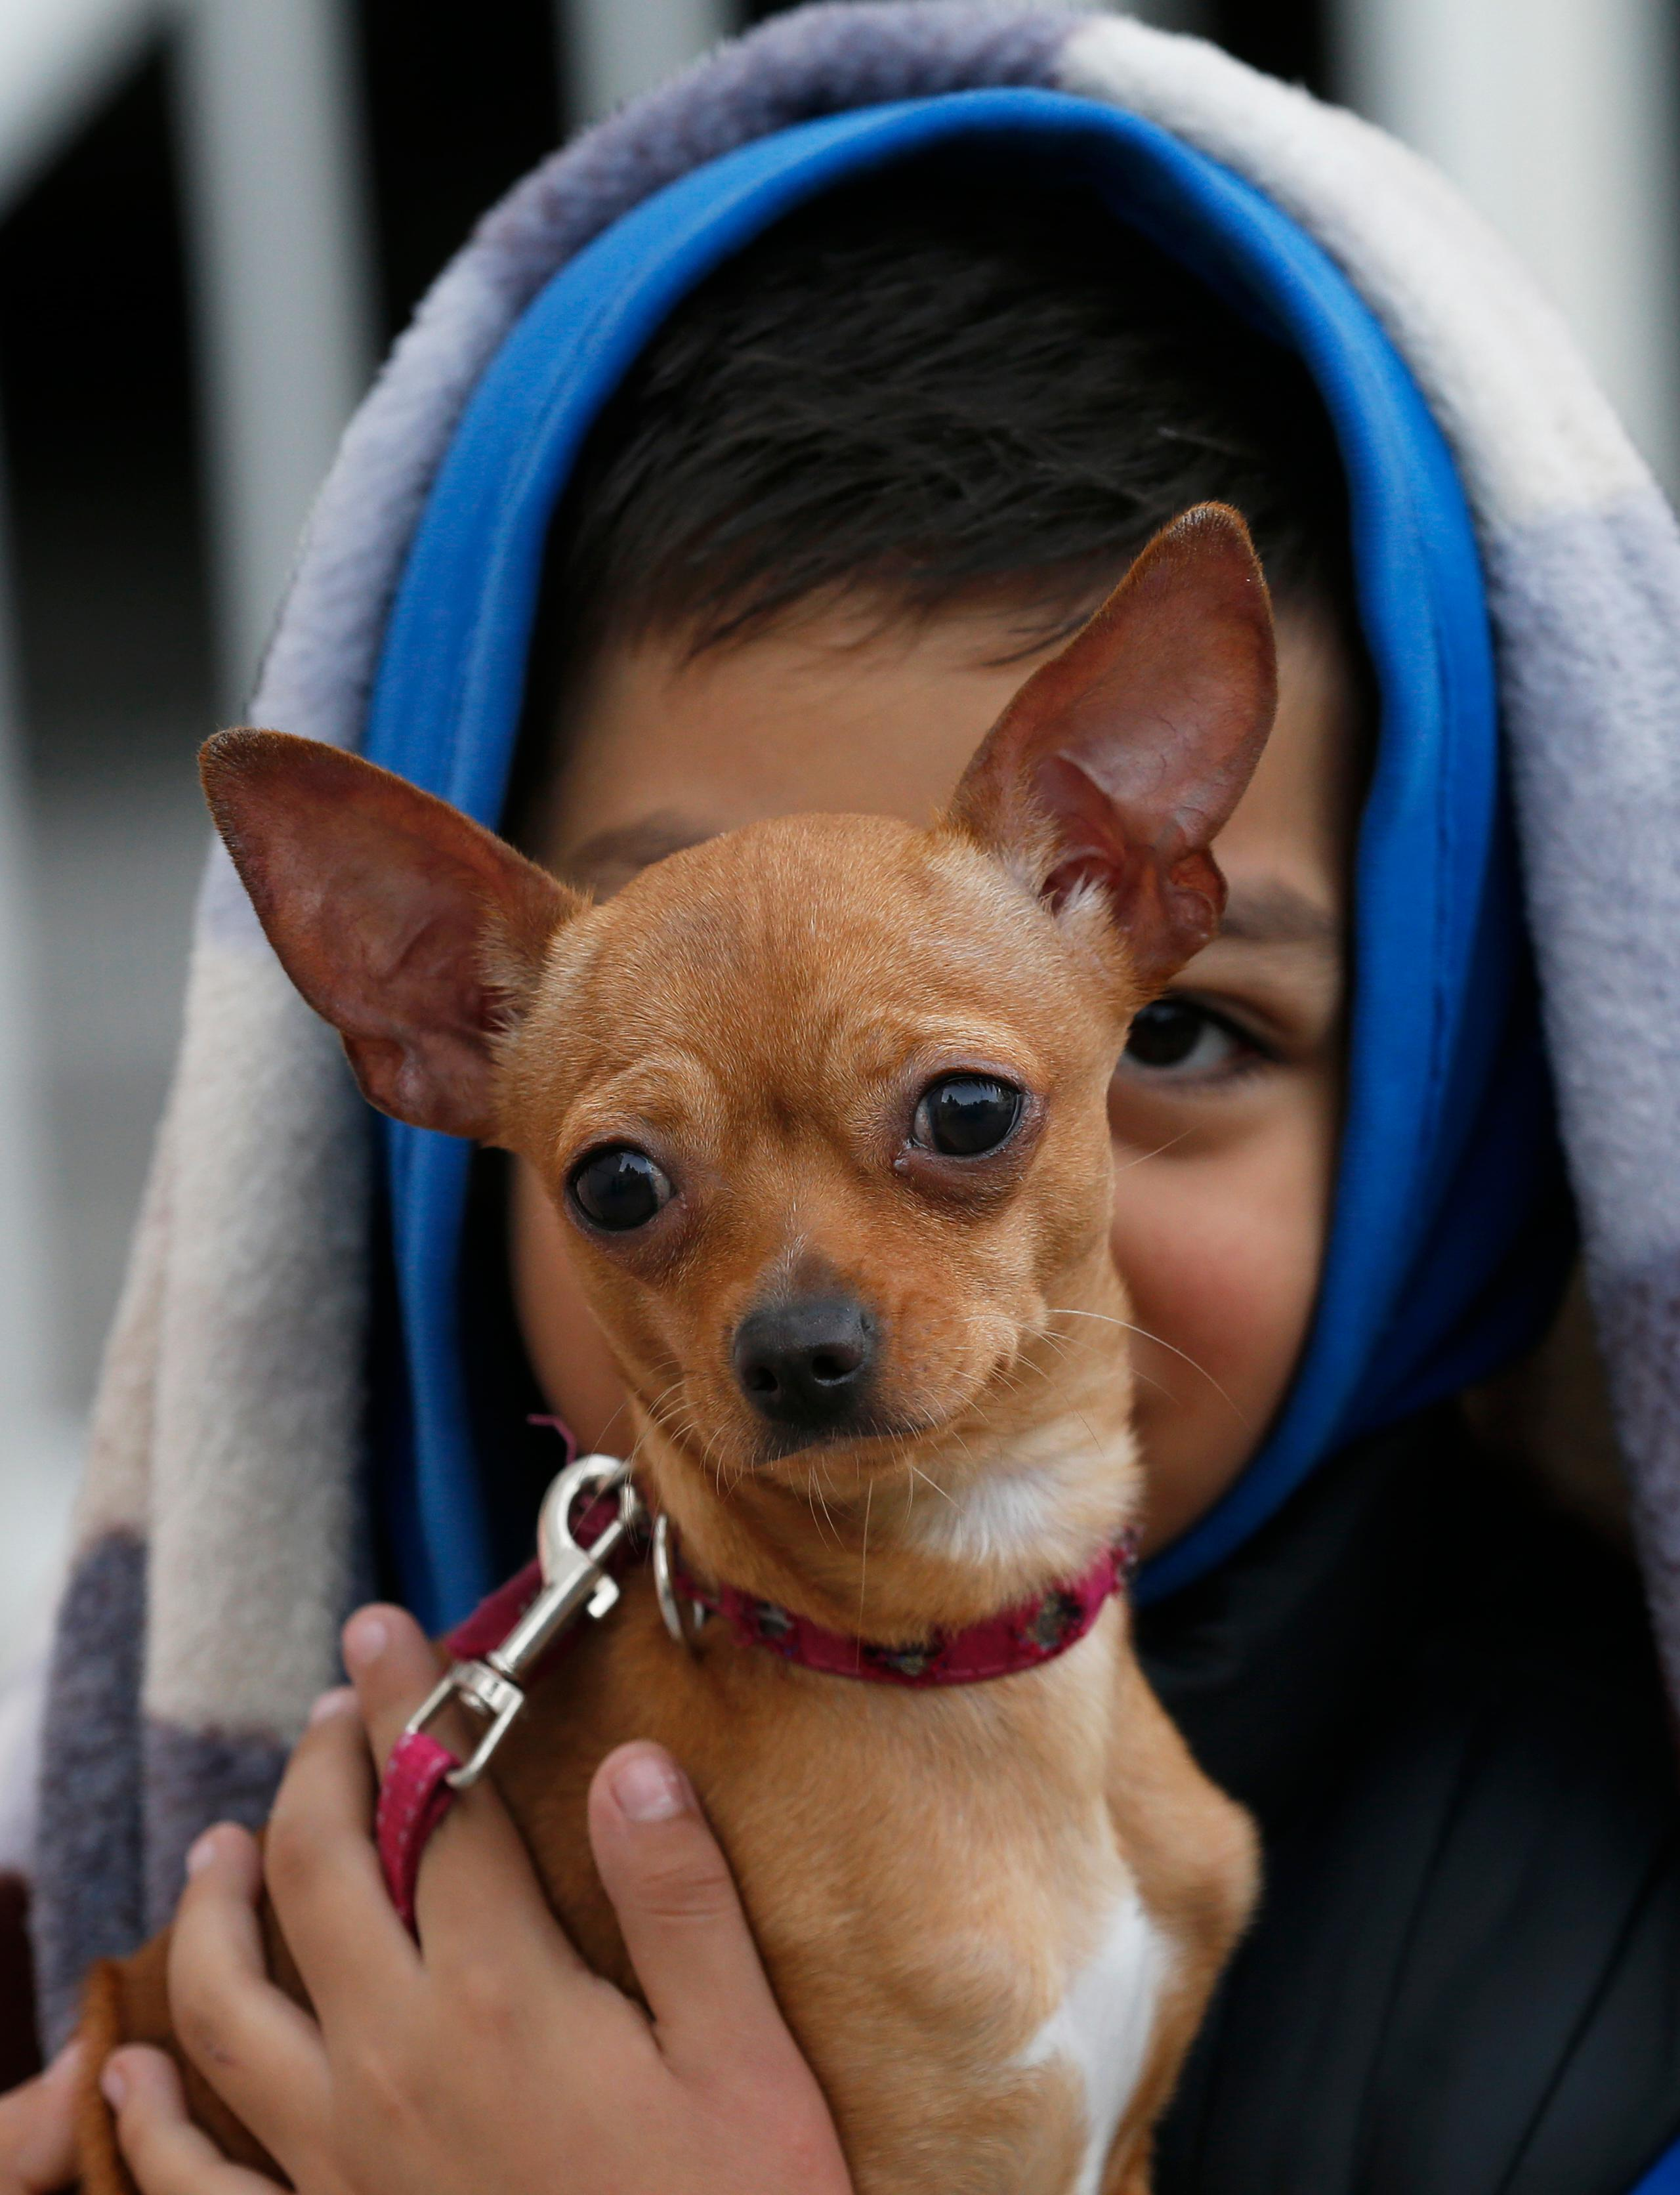 Absel Salazar holds his Chihuahua Luly after fleeing his home in response to an earthquake alarm, in Mexico City, Saturday, Sept. 23, 2017. A strong aftershock rolled through Mexico City, Saturday morning, swaying buildings and sending some people running into the street.(AP Photo/Marco Ugarte)